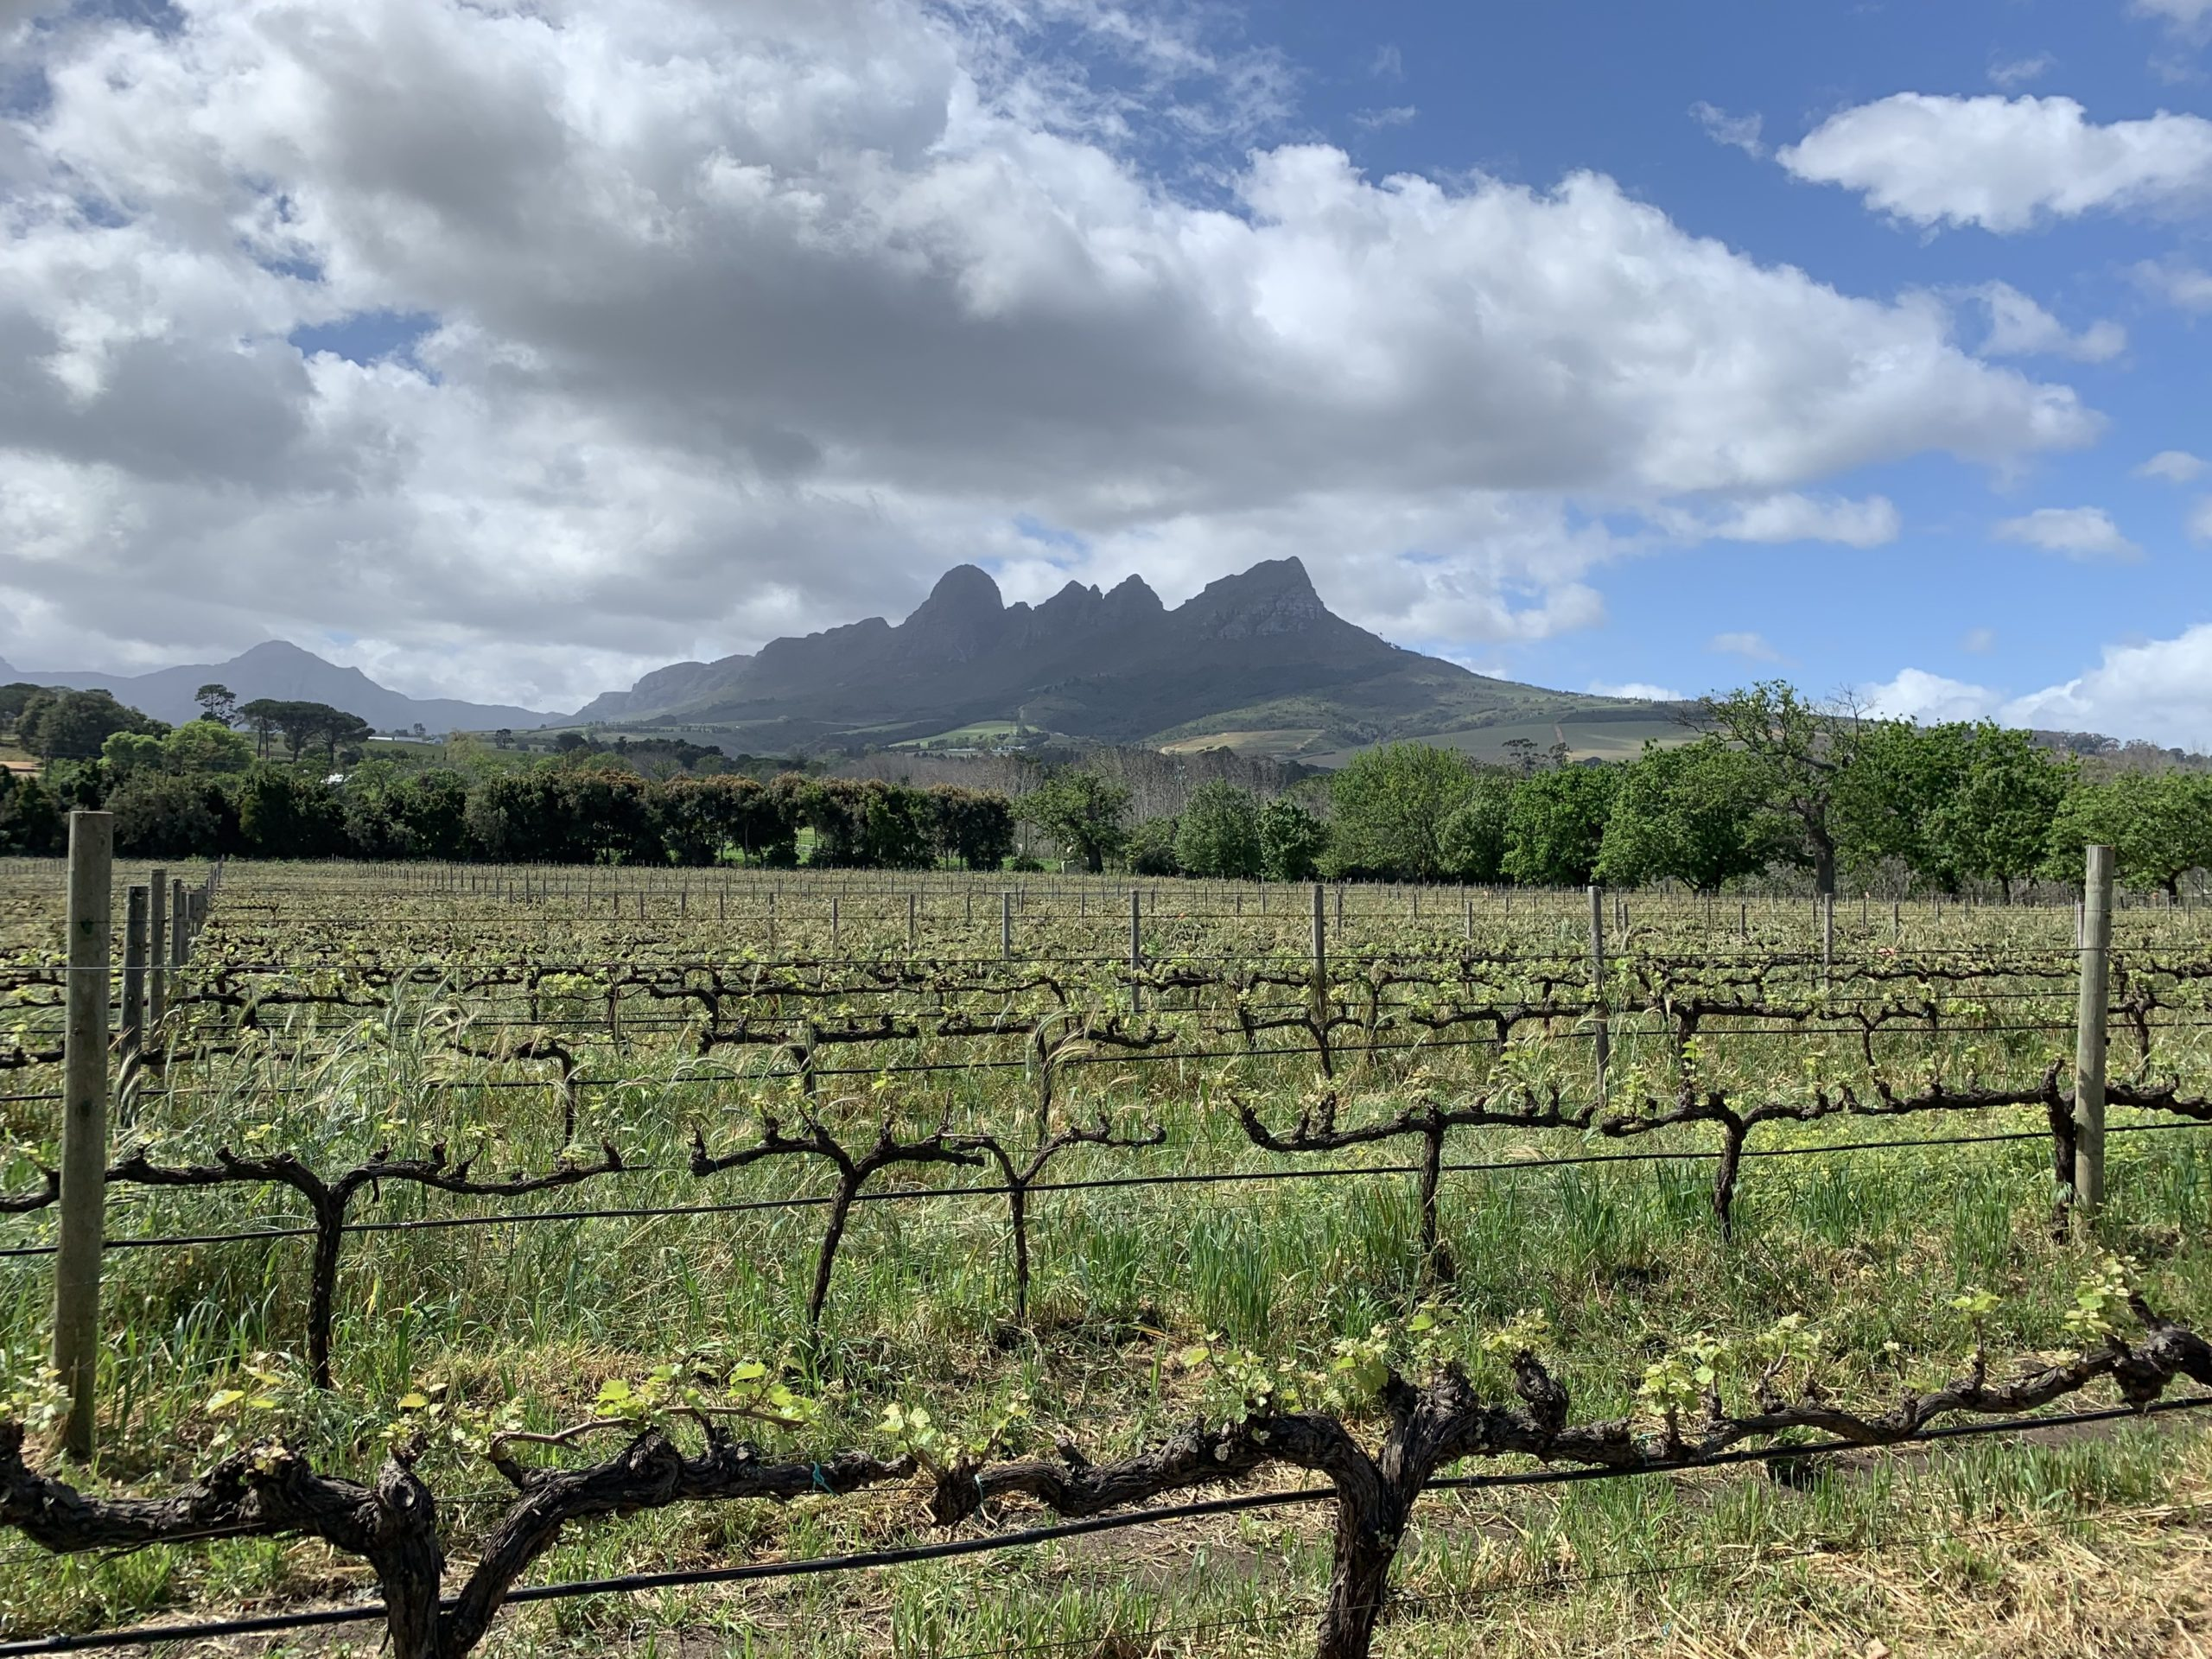 A vineyard in the Stellenbosch wine region of South Africa